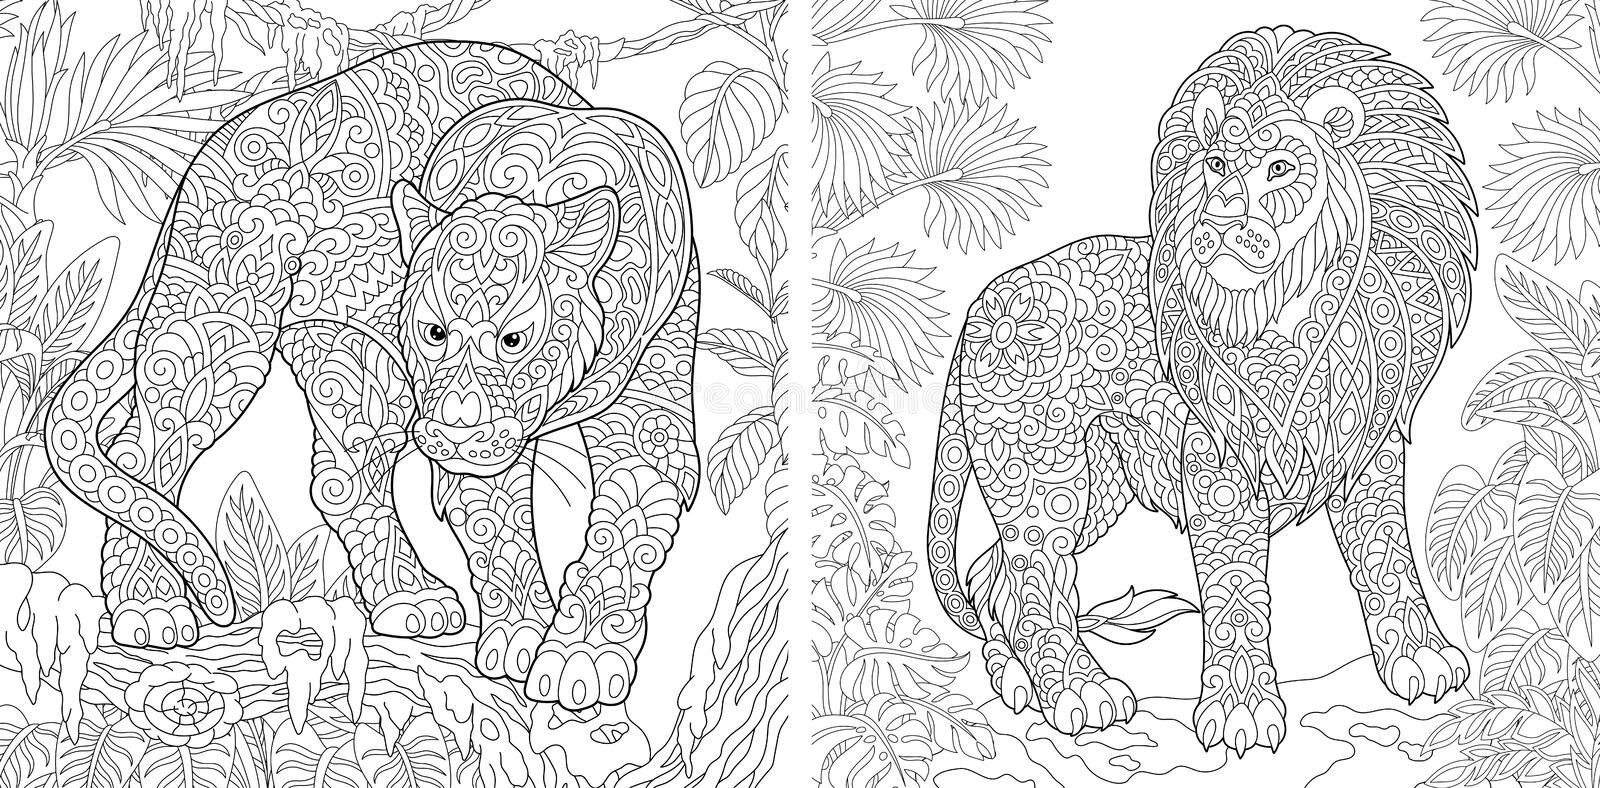 Coloring Pages. Coloring Book for adults. Colouring pictures with panther and lion. Antistress freehand sketch drawing with doodle stock illustration